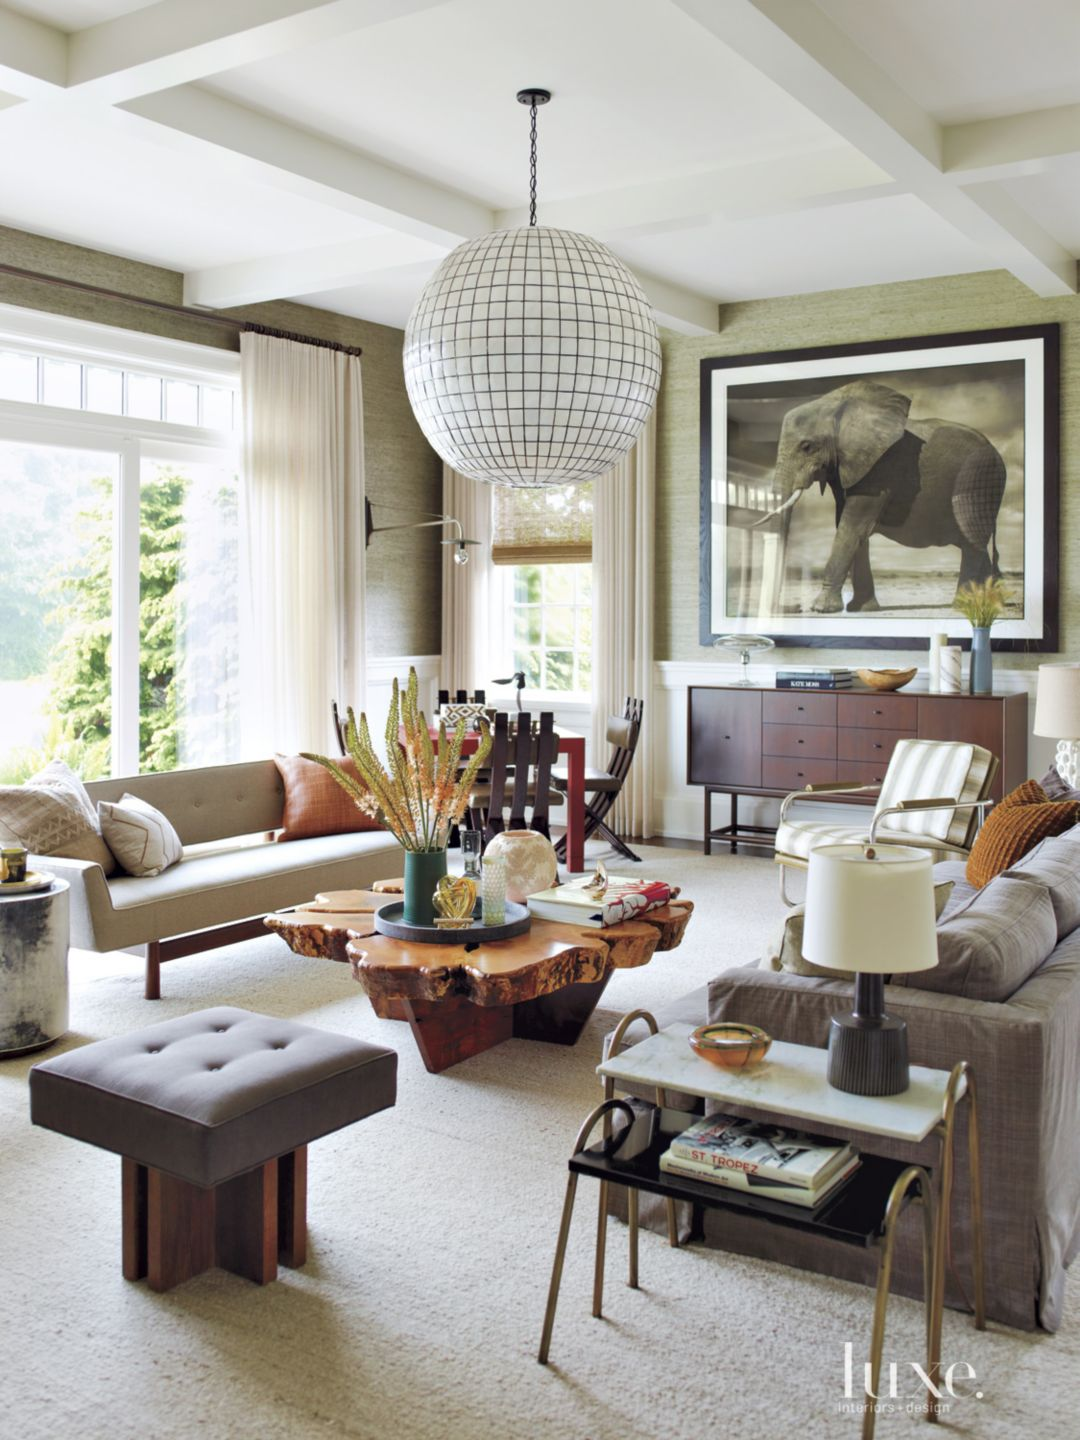 Eclectic Neutral Living Room with Oversized Pendant